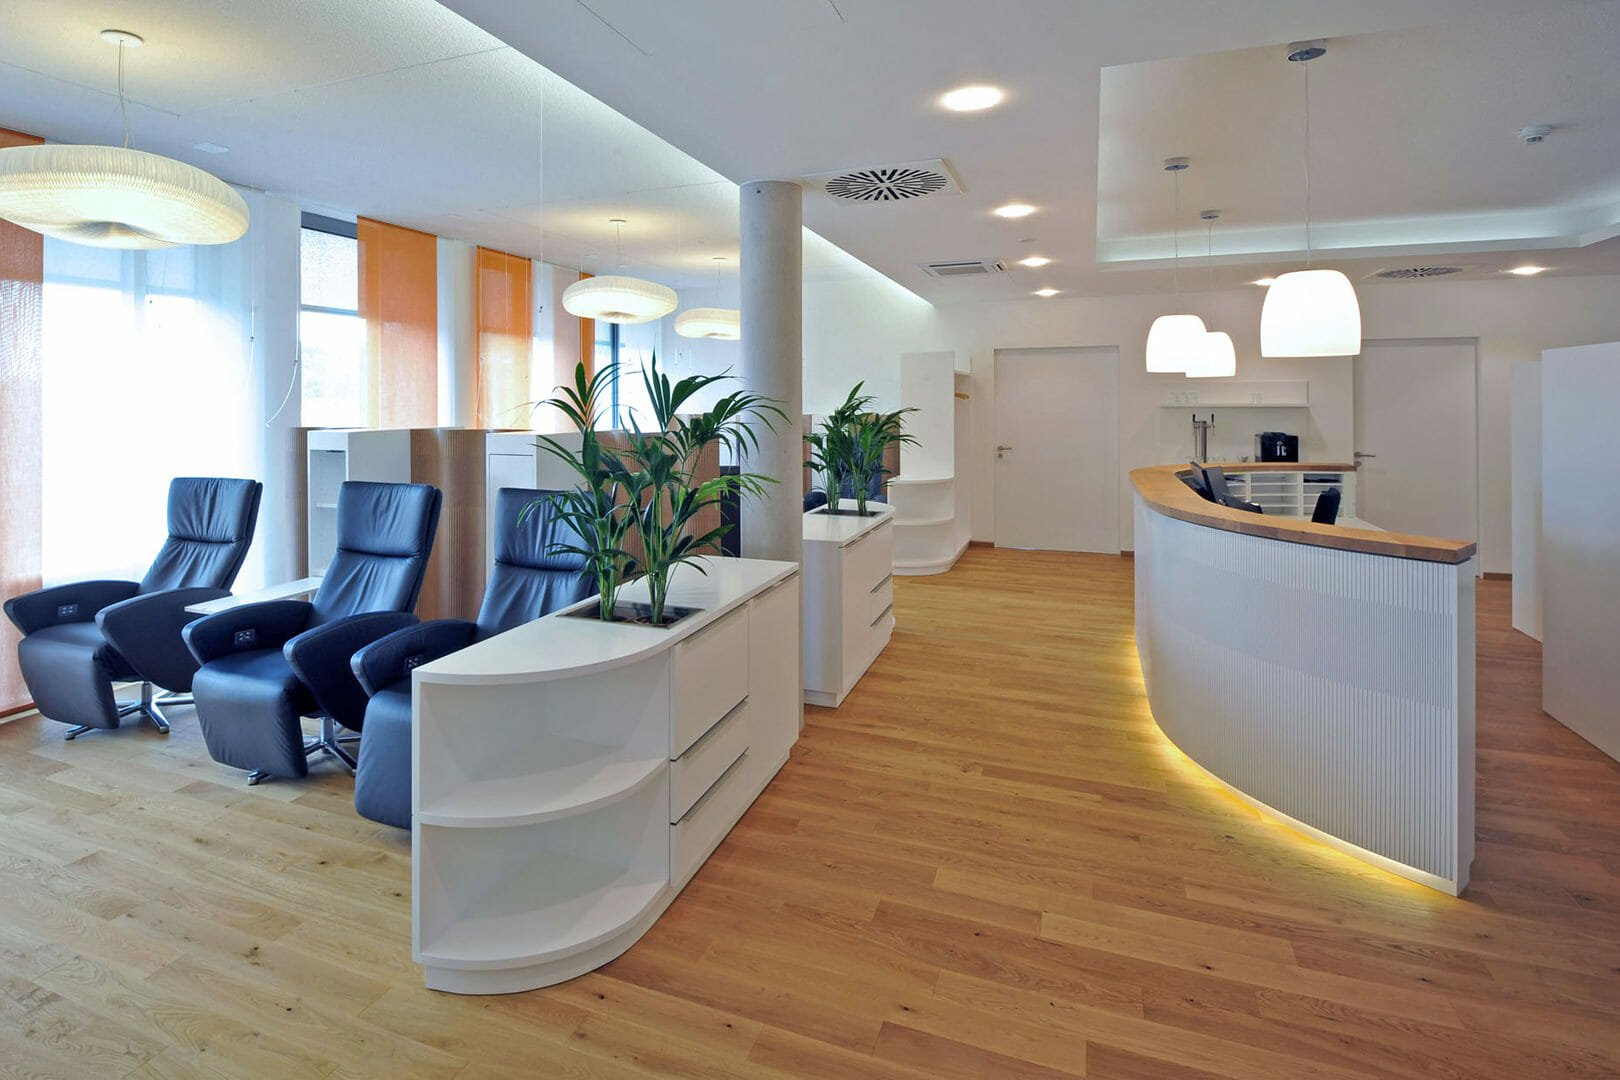 curve wall using as reception desk for patients and waiting area